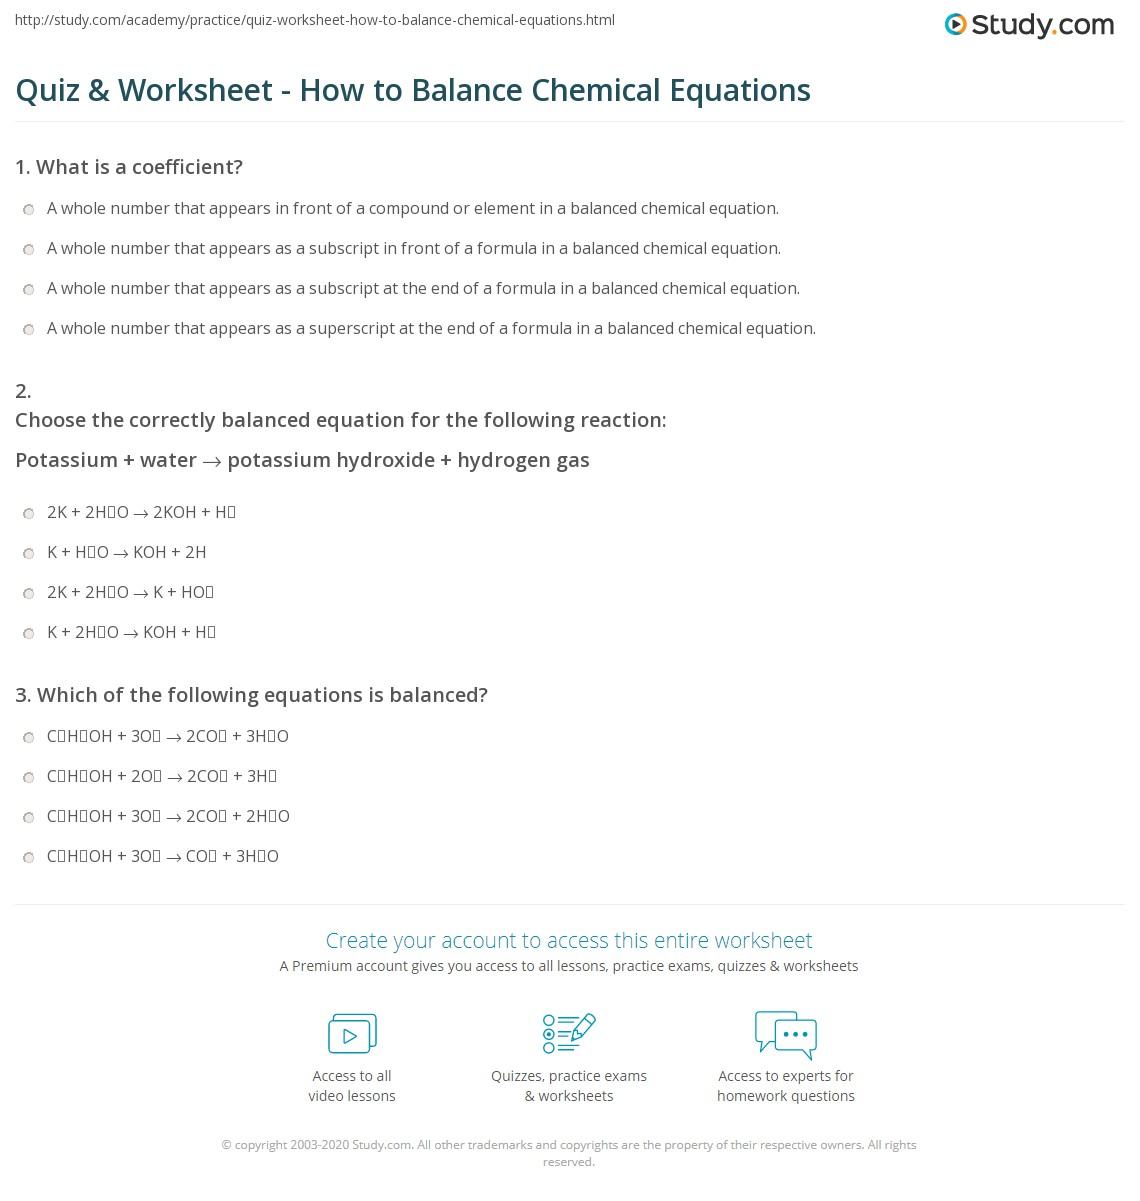 Balance Chemical Equations Questions And Answers